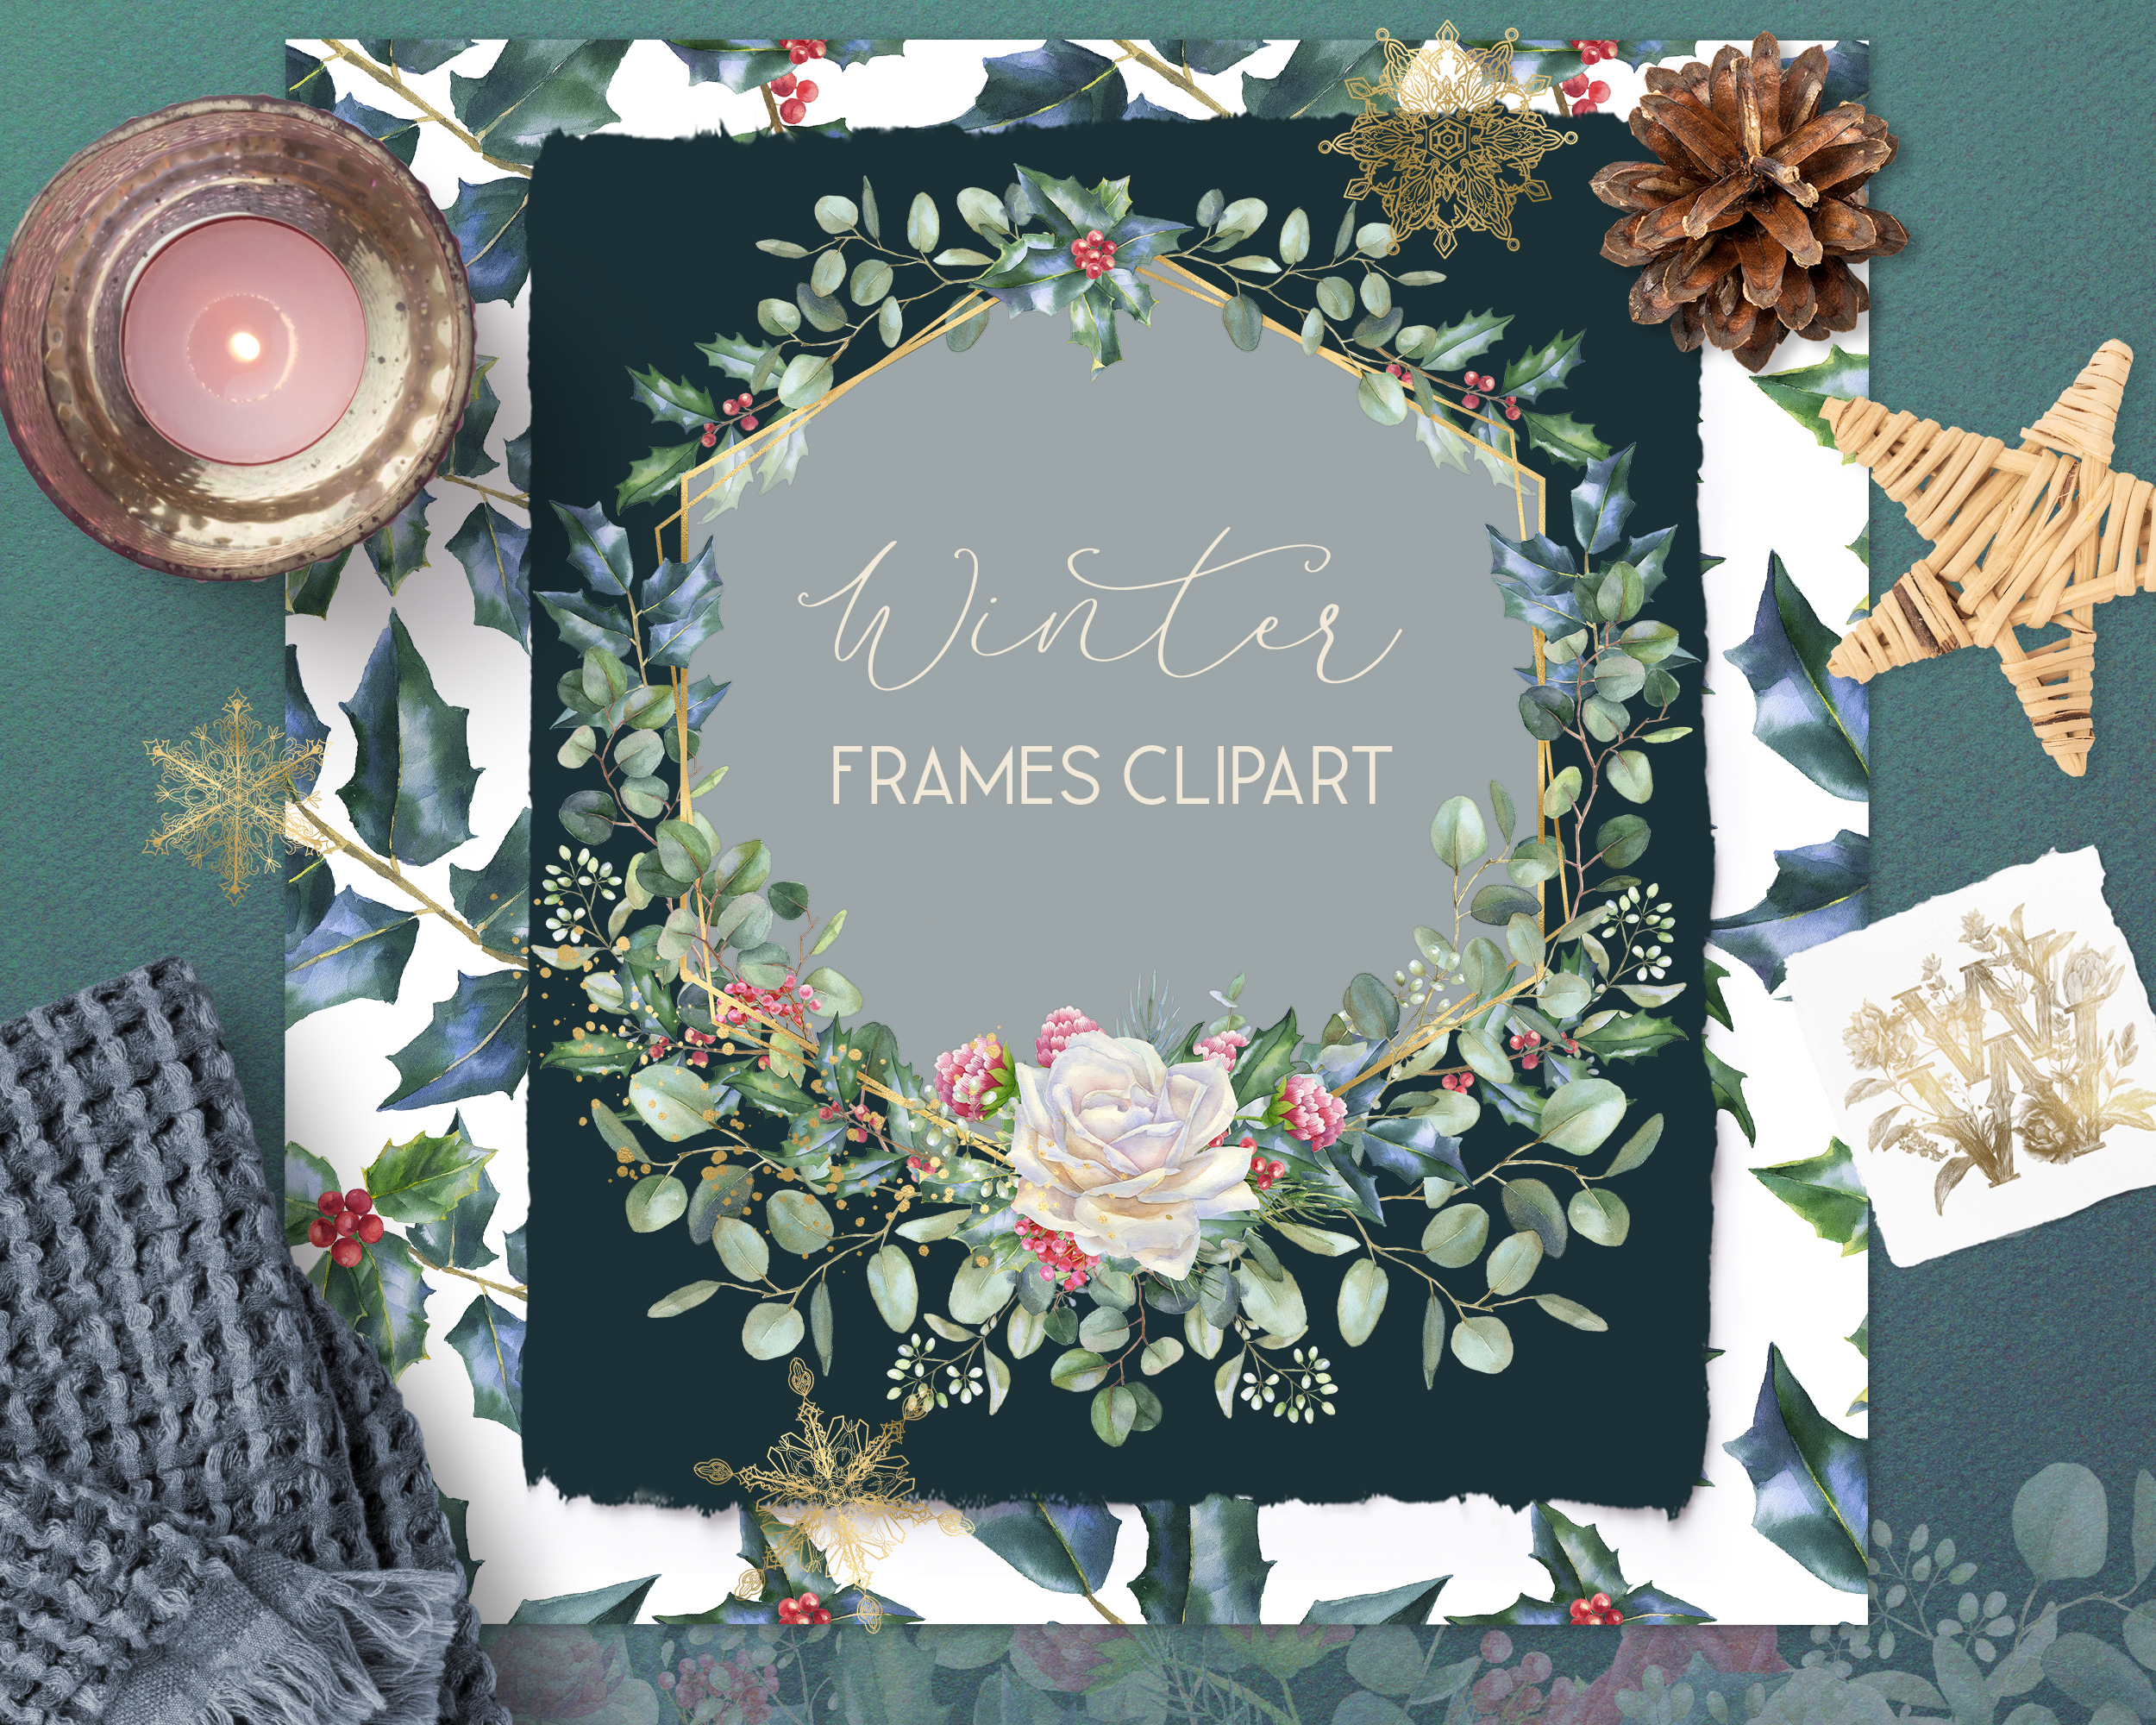 Winter frames clipart, watercolor Christmas borders png example image 6